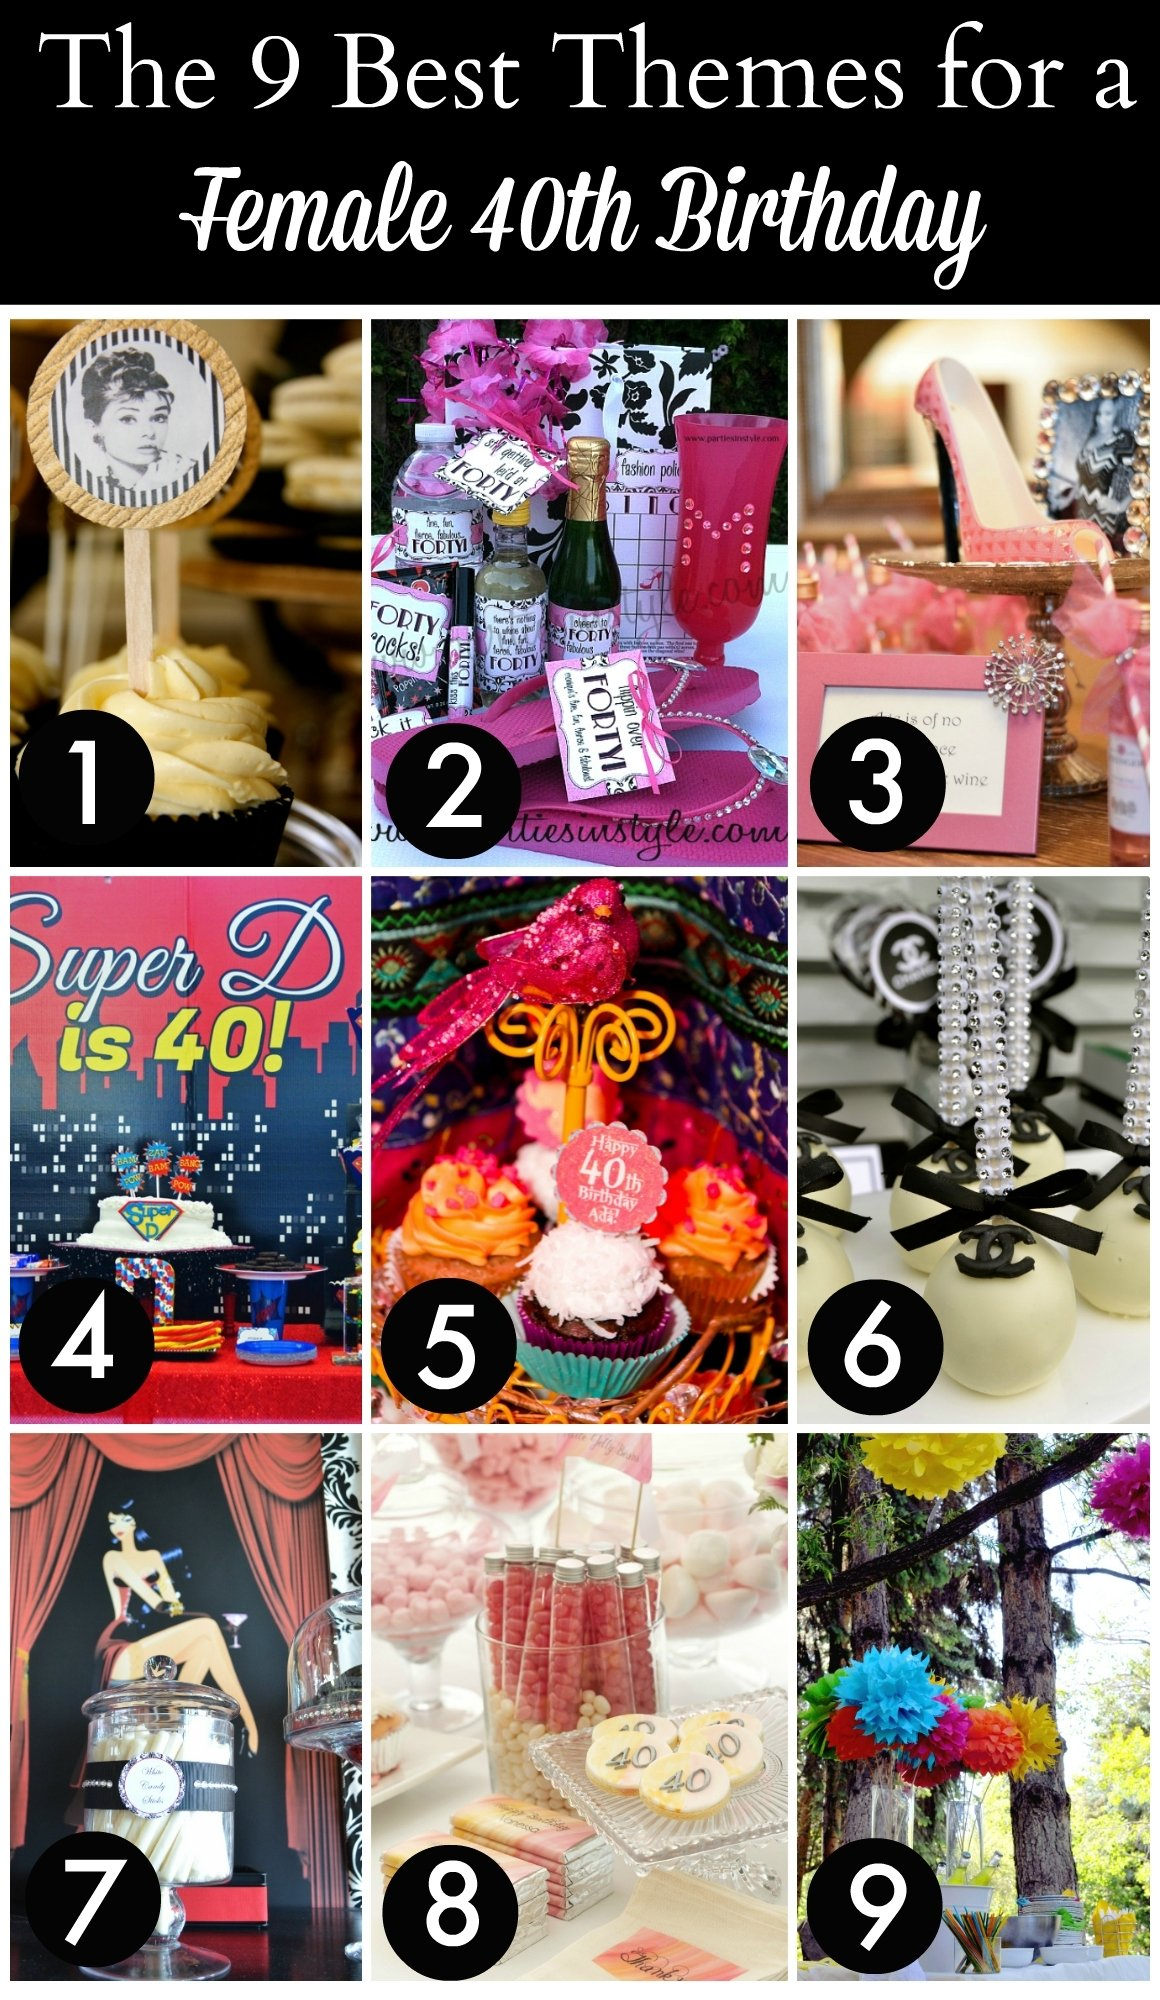 10 Awesome Ideas For 40Th Birthday Party the 12 best 40th birthday themes for women catch my party 14 2021